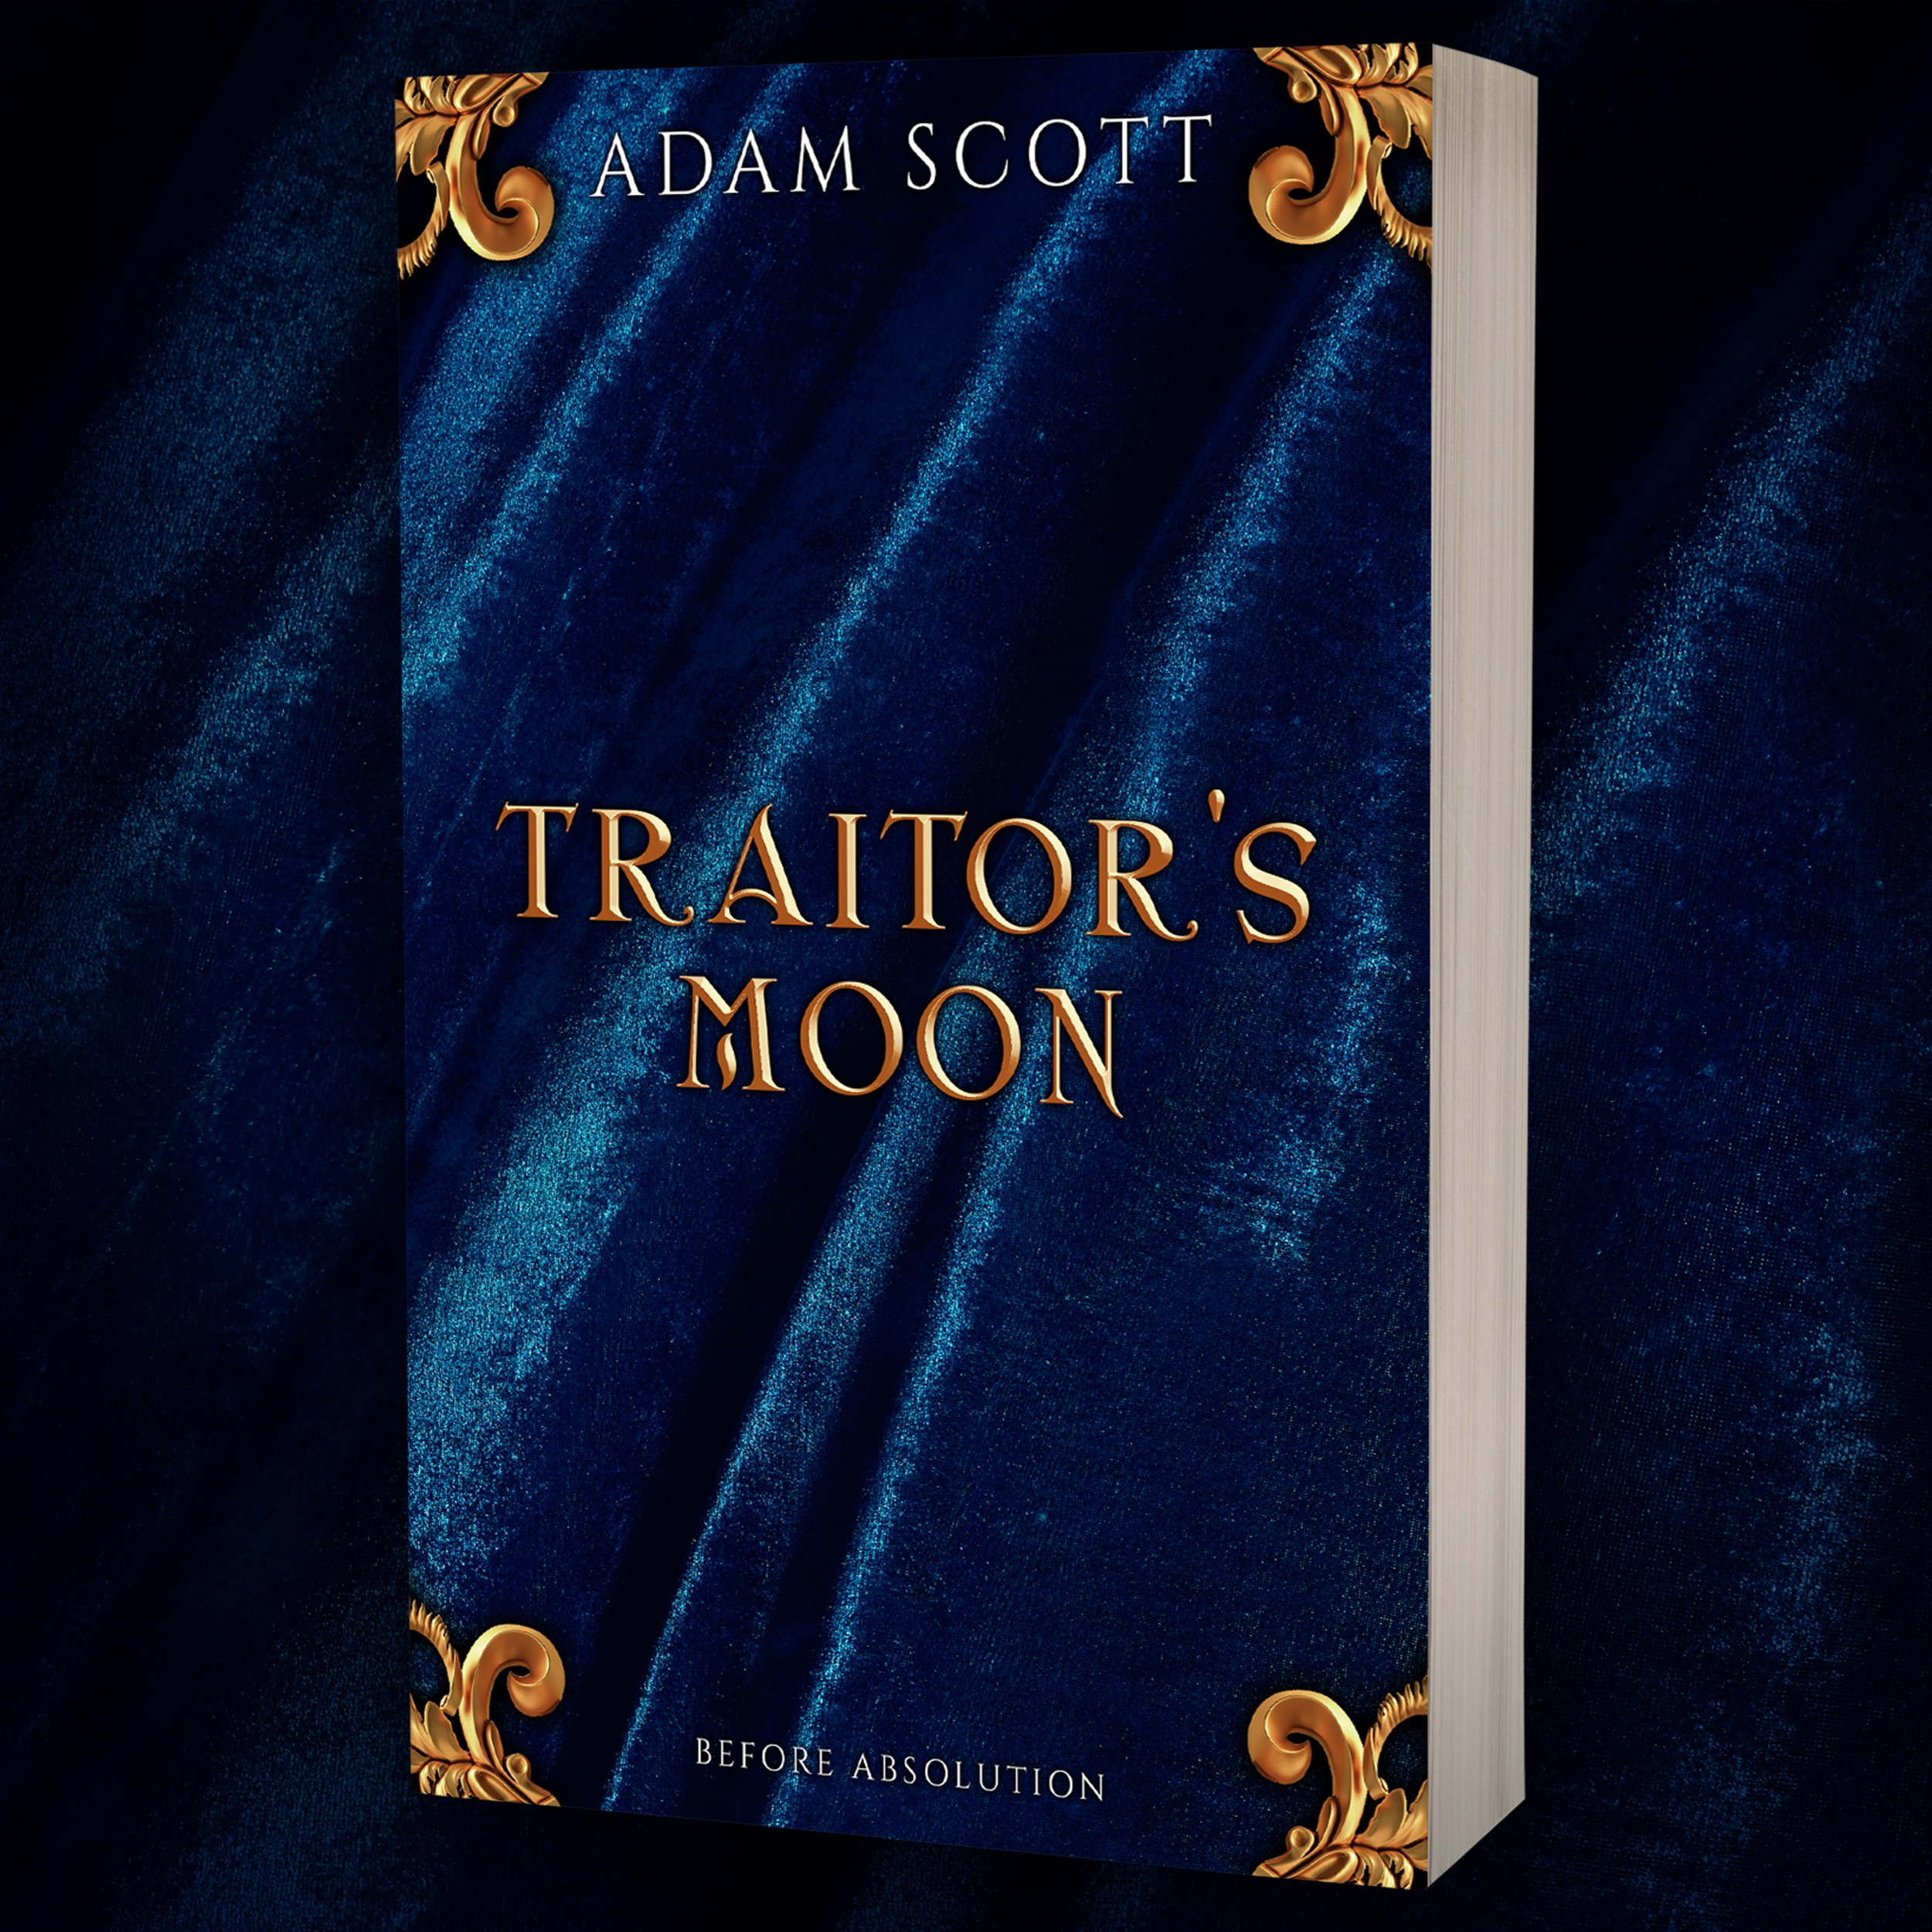 Ebook cover design - TRAITOR'S MOON